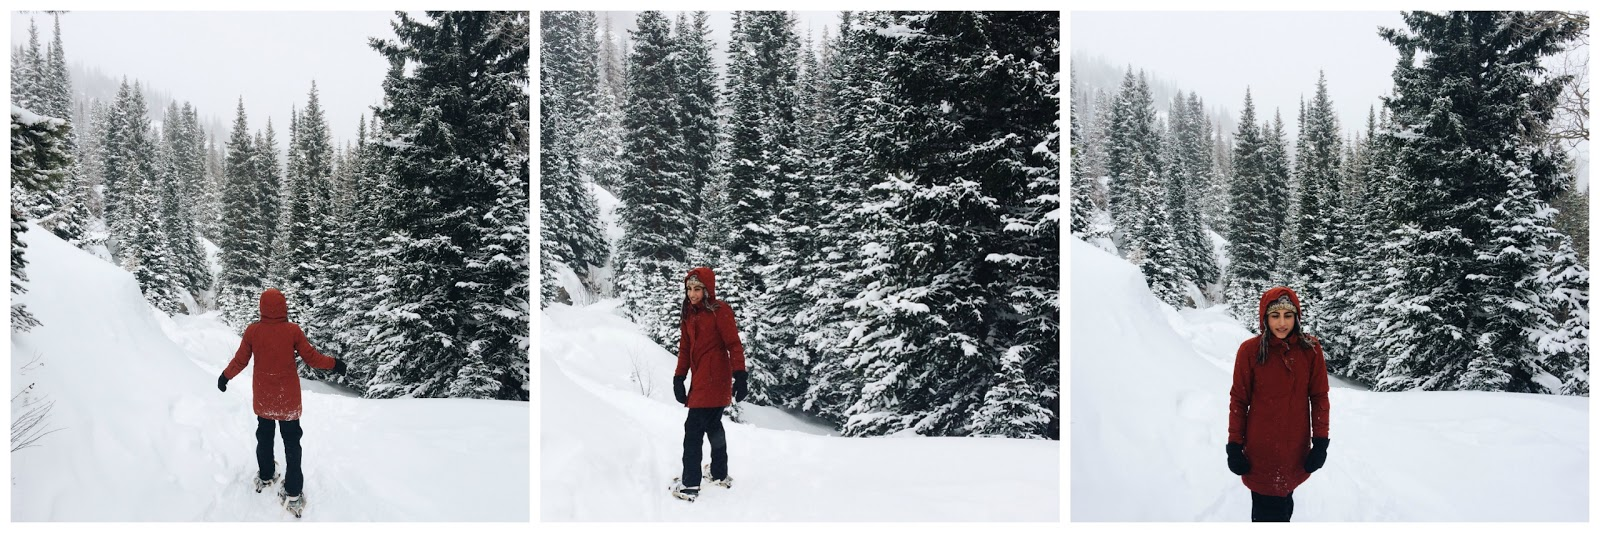 Rocky Mountain Snowshoeing Trails